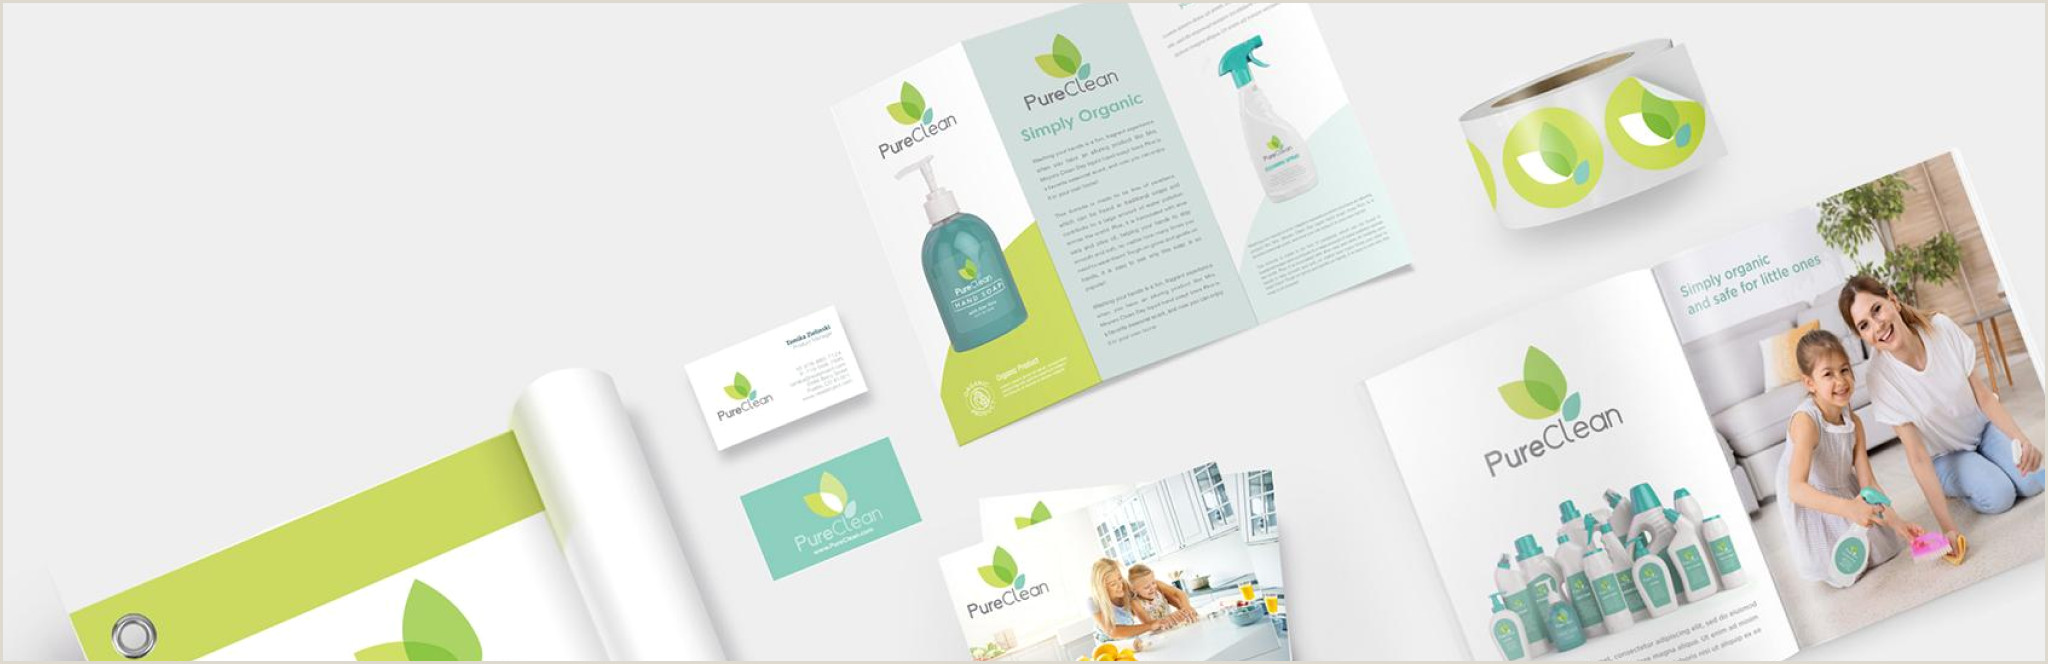 Professional Business Card Examples Printplace High Quality Line Printing Services